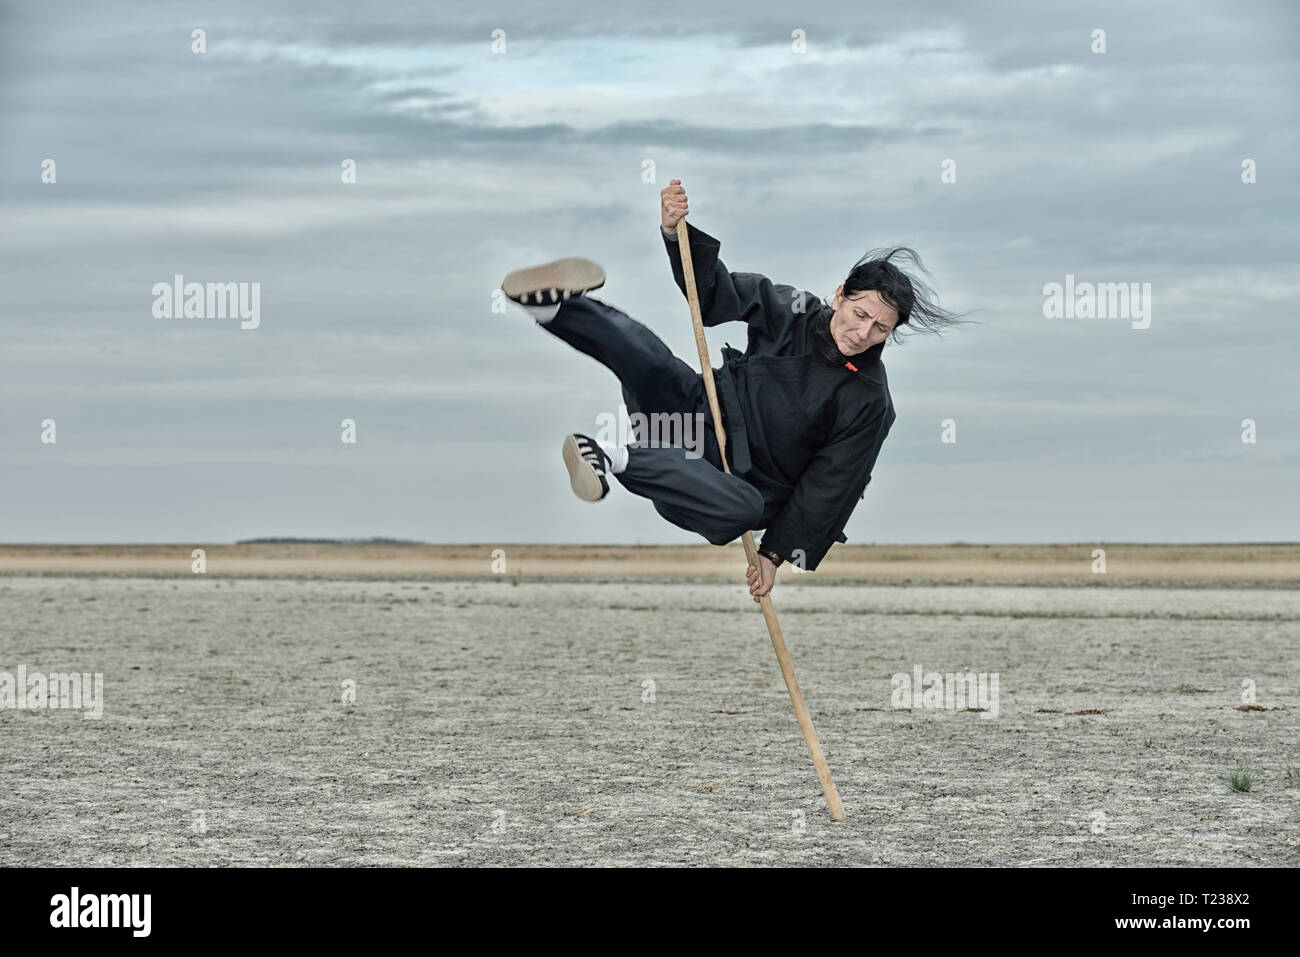 Qigong Stock Photos & Qigong Stock Images - Alamy